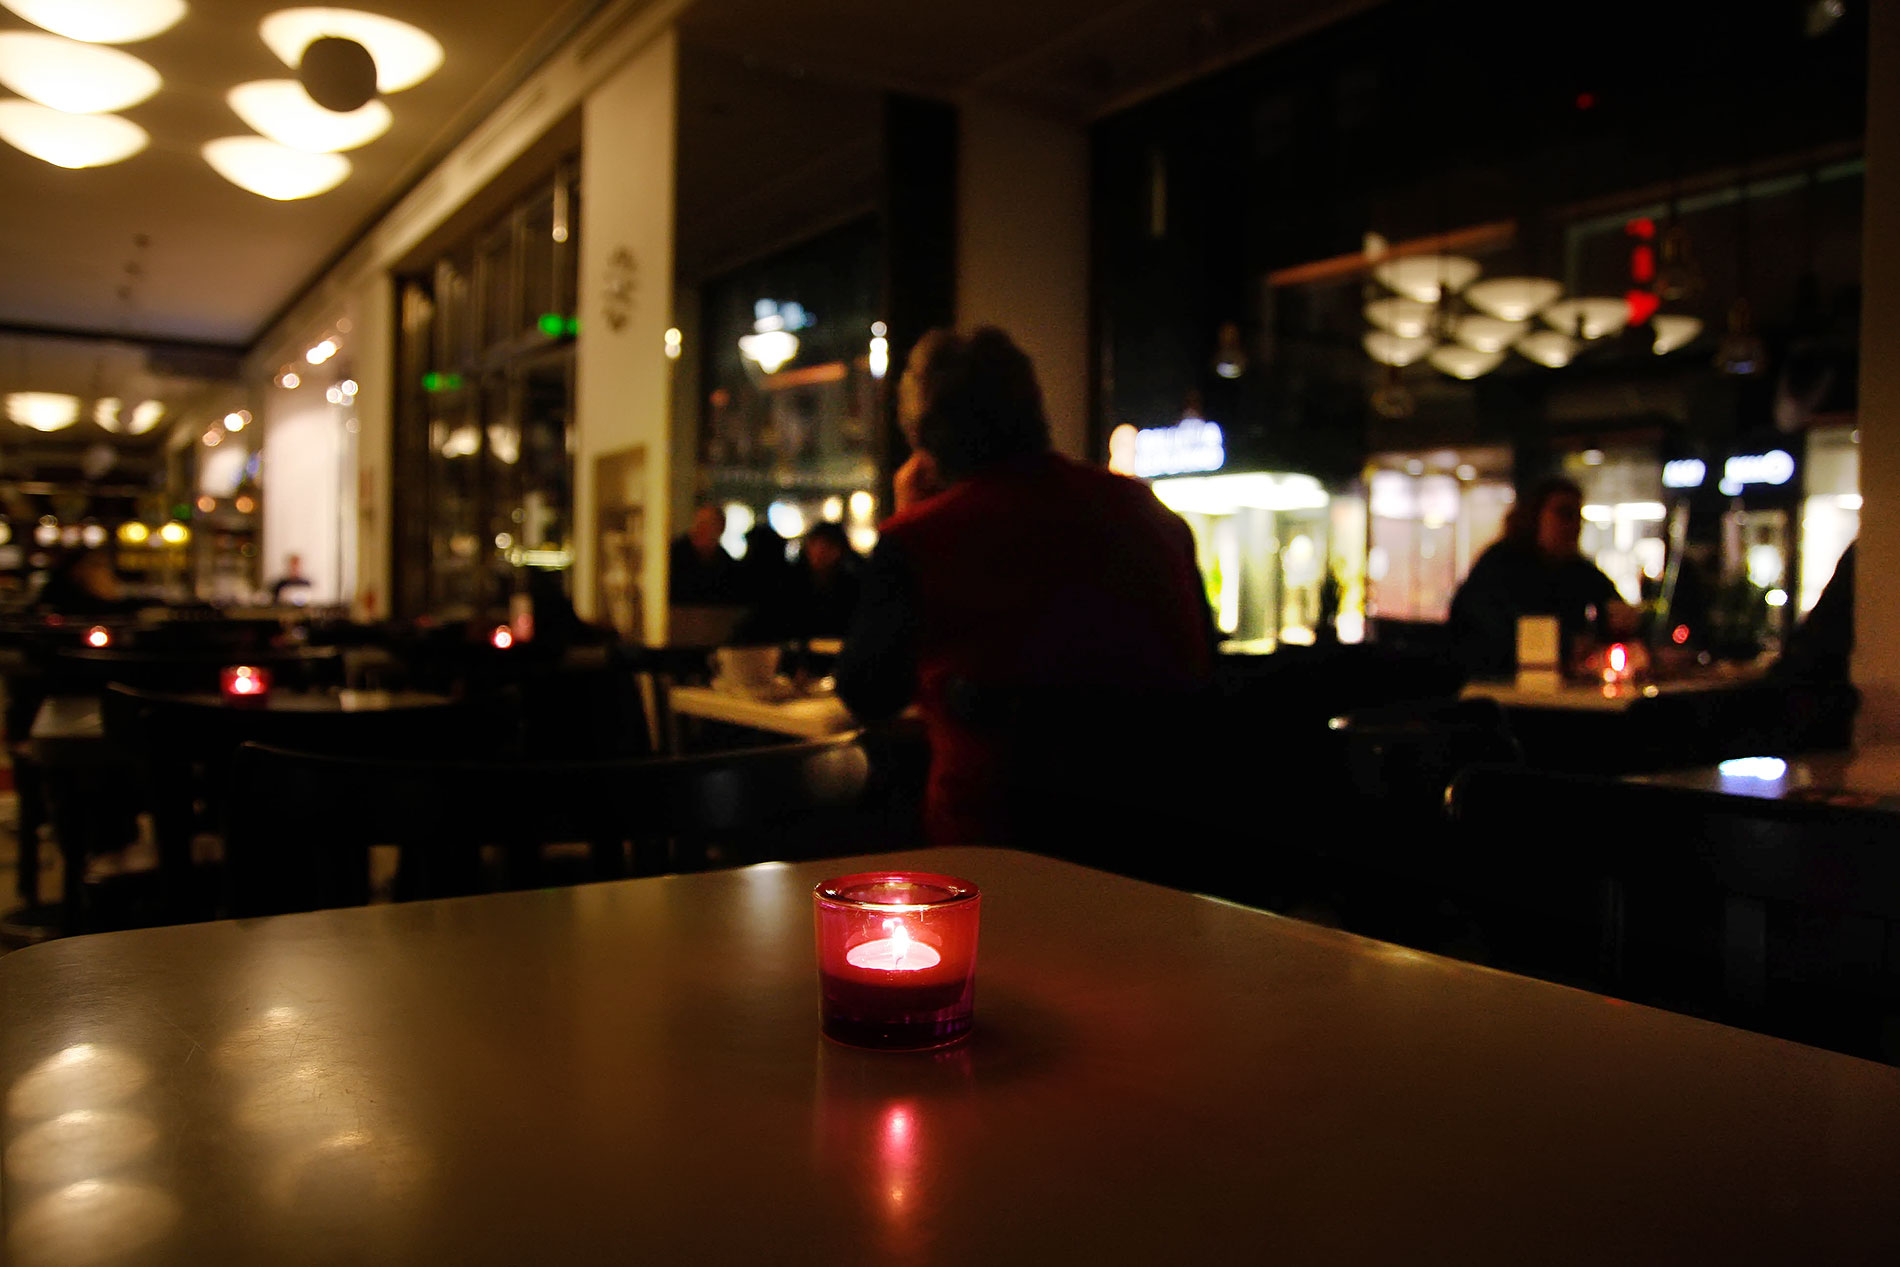 NoHo Partners is one of the largest operators in the restaurant sector in Finland. Due to the impending restrictions on restaurants, which, among others, force some bars to close before midnight, NoHo Partners is to begin negotiations for job cuts that concern up to 1,300 workers. Photograph: Tony Öhberg/Finland Today